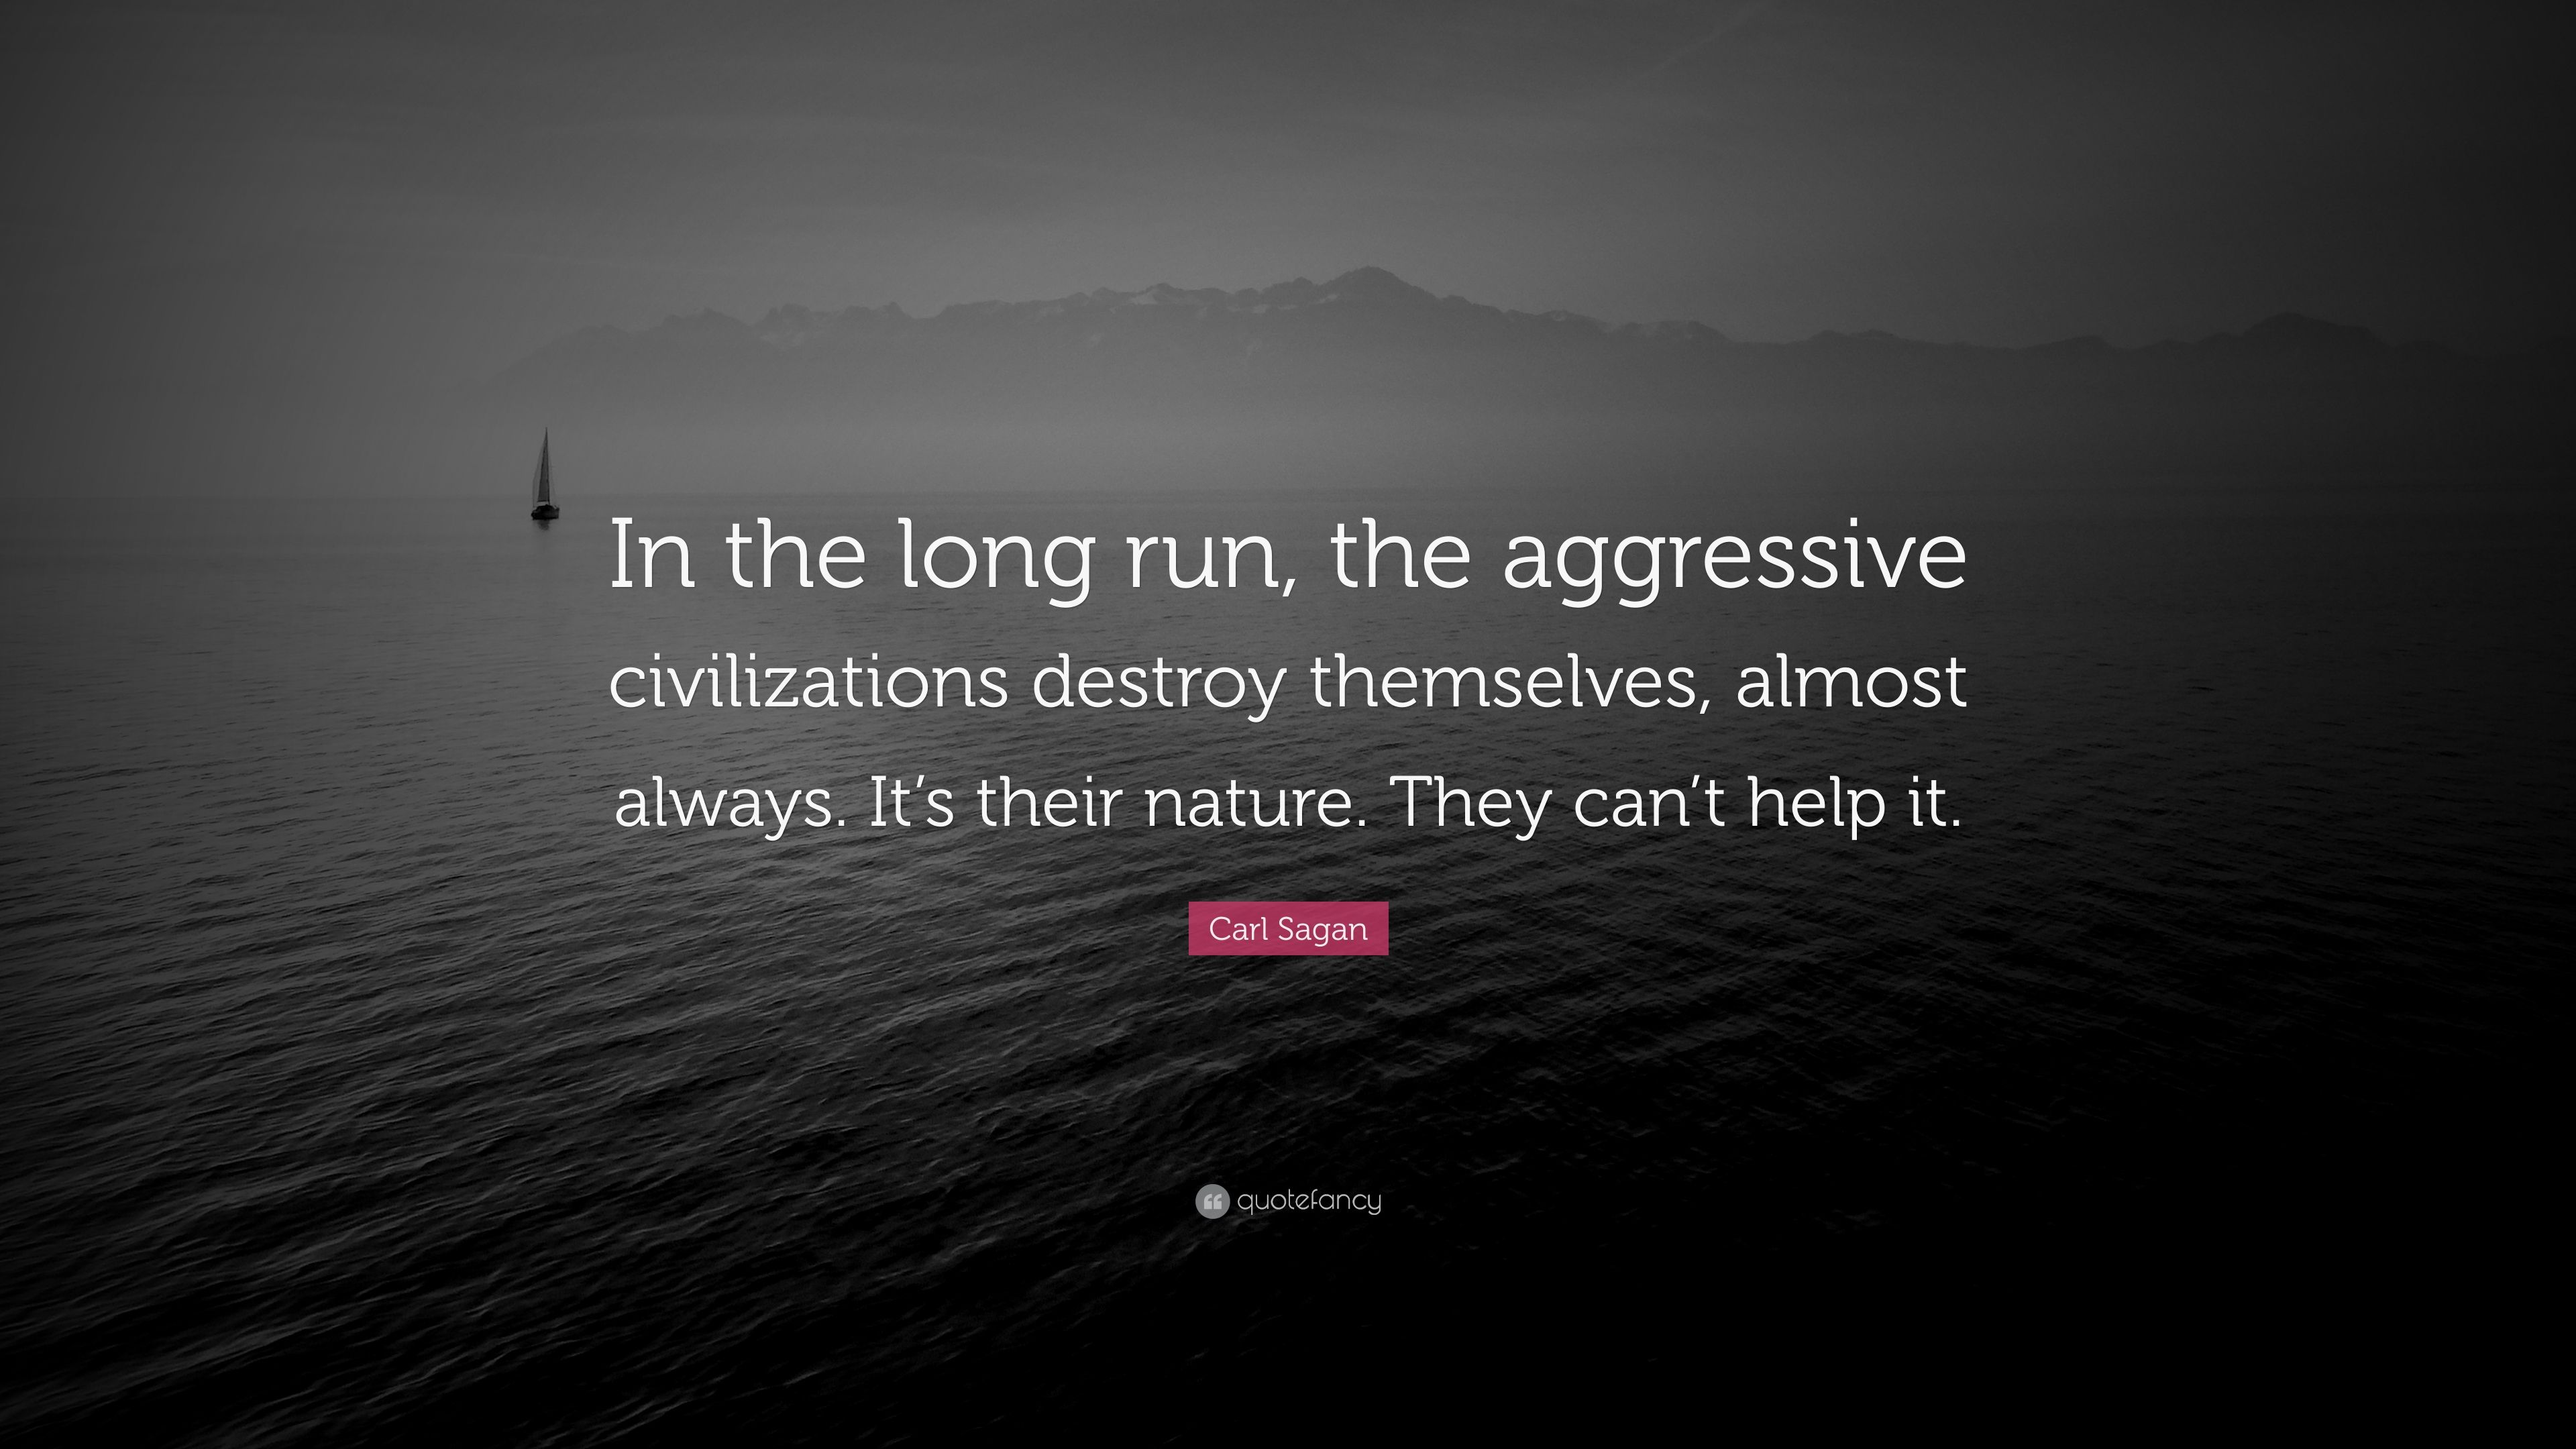 Aggressive Quotes Wallpapers Carl Sagan Quote In The Long Run The Aggressive